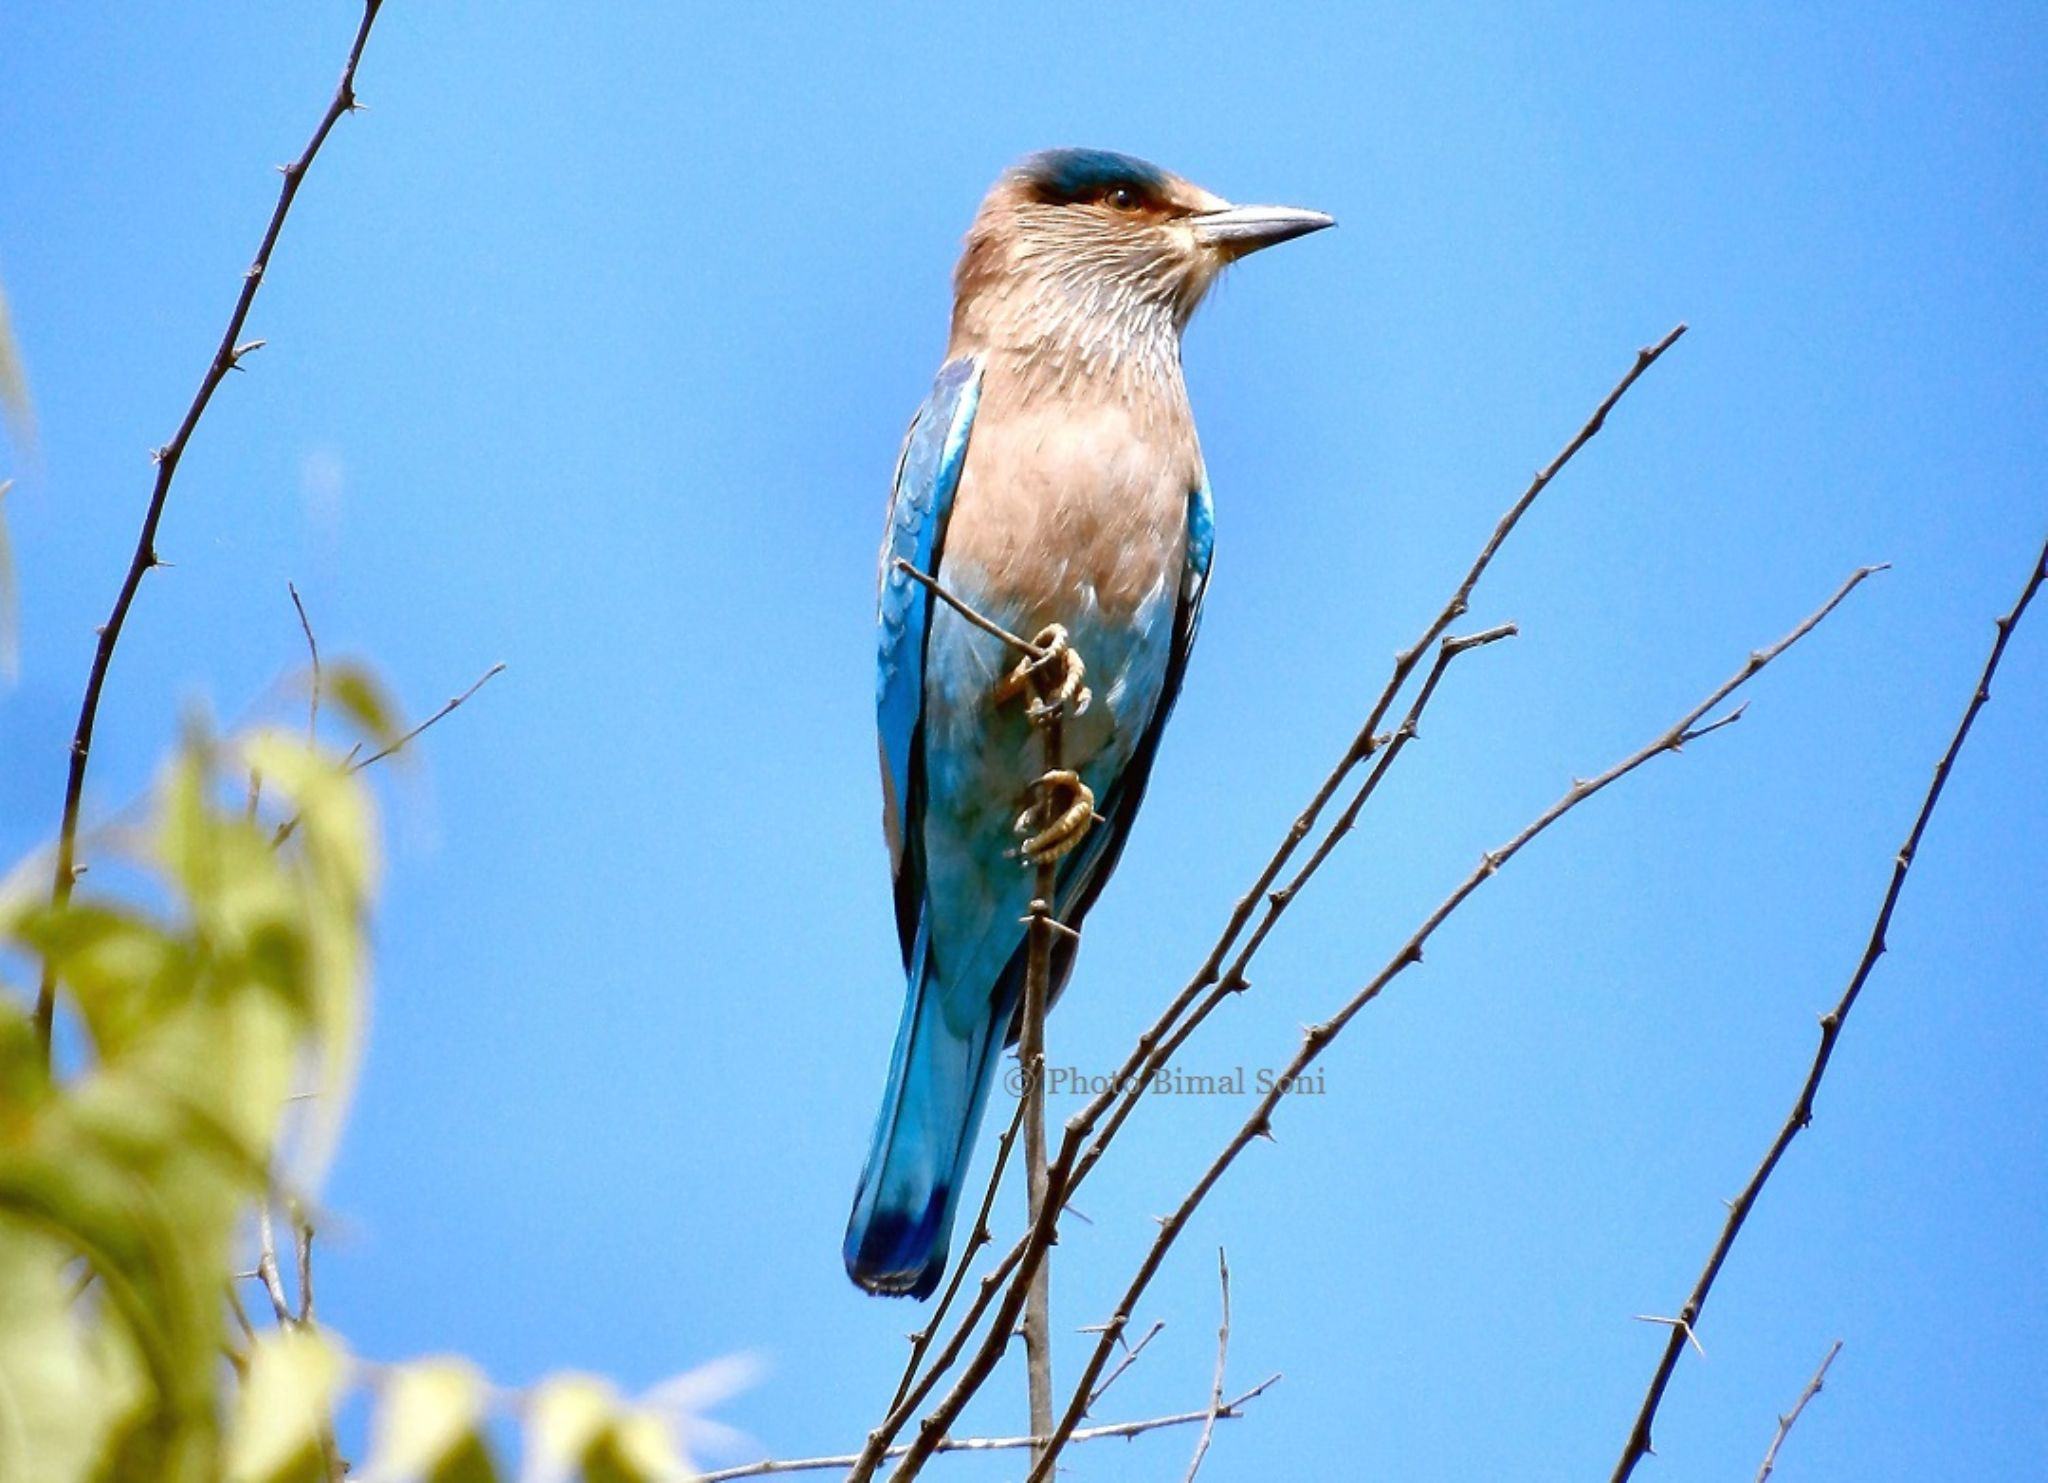 Indian_Roller by Bimal Soni